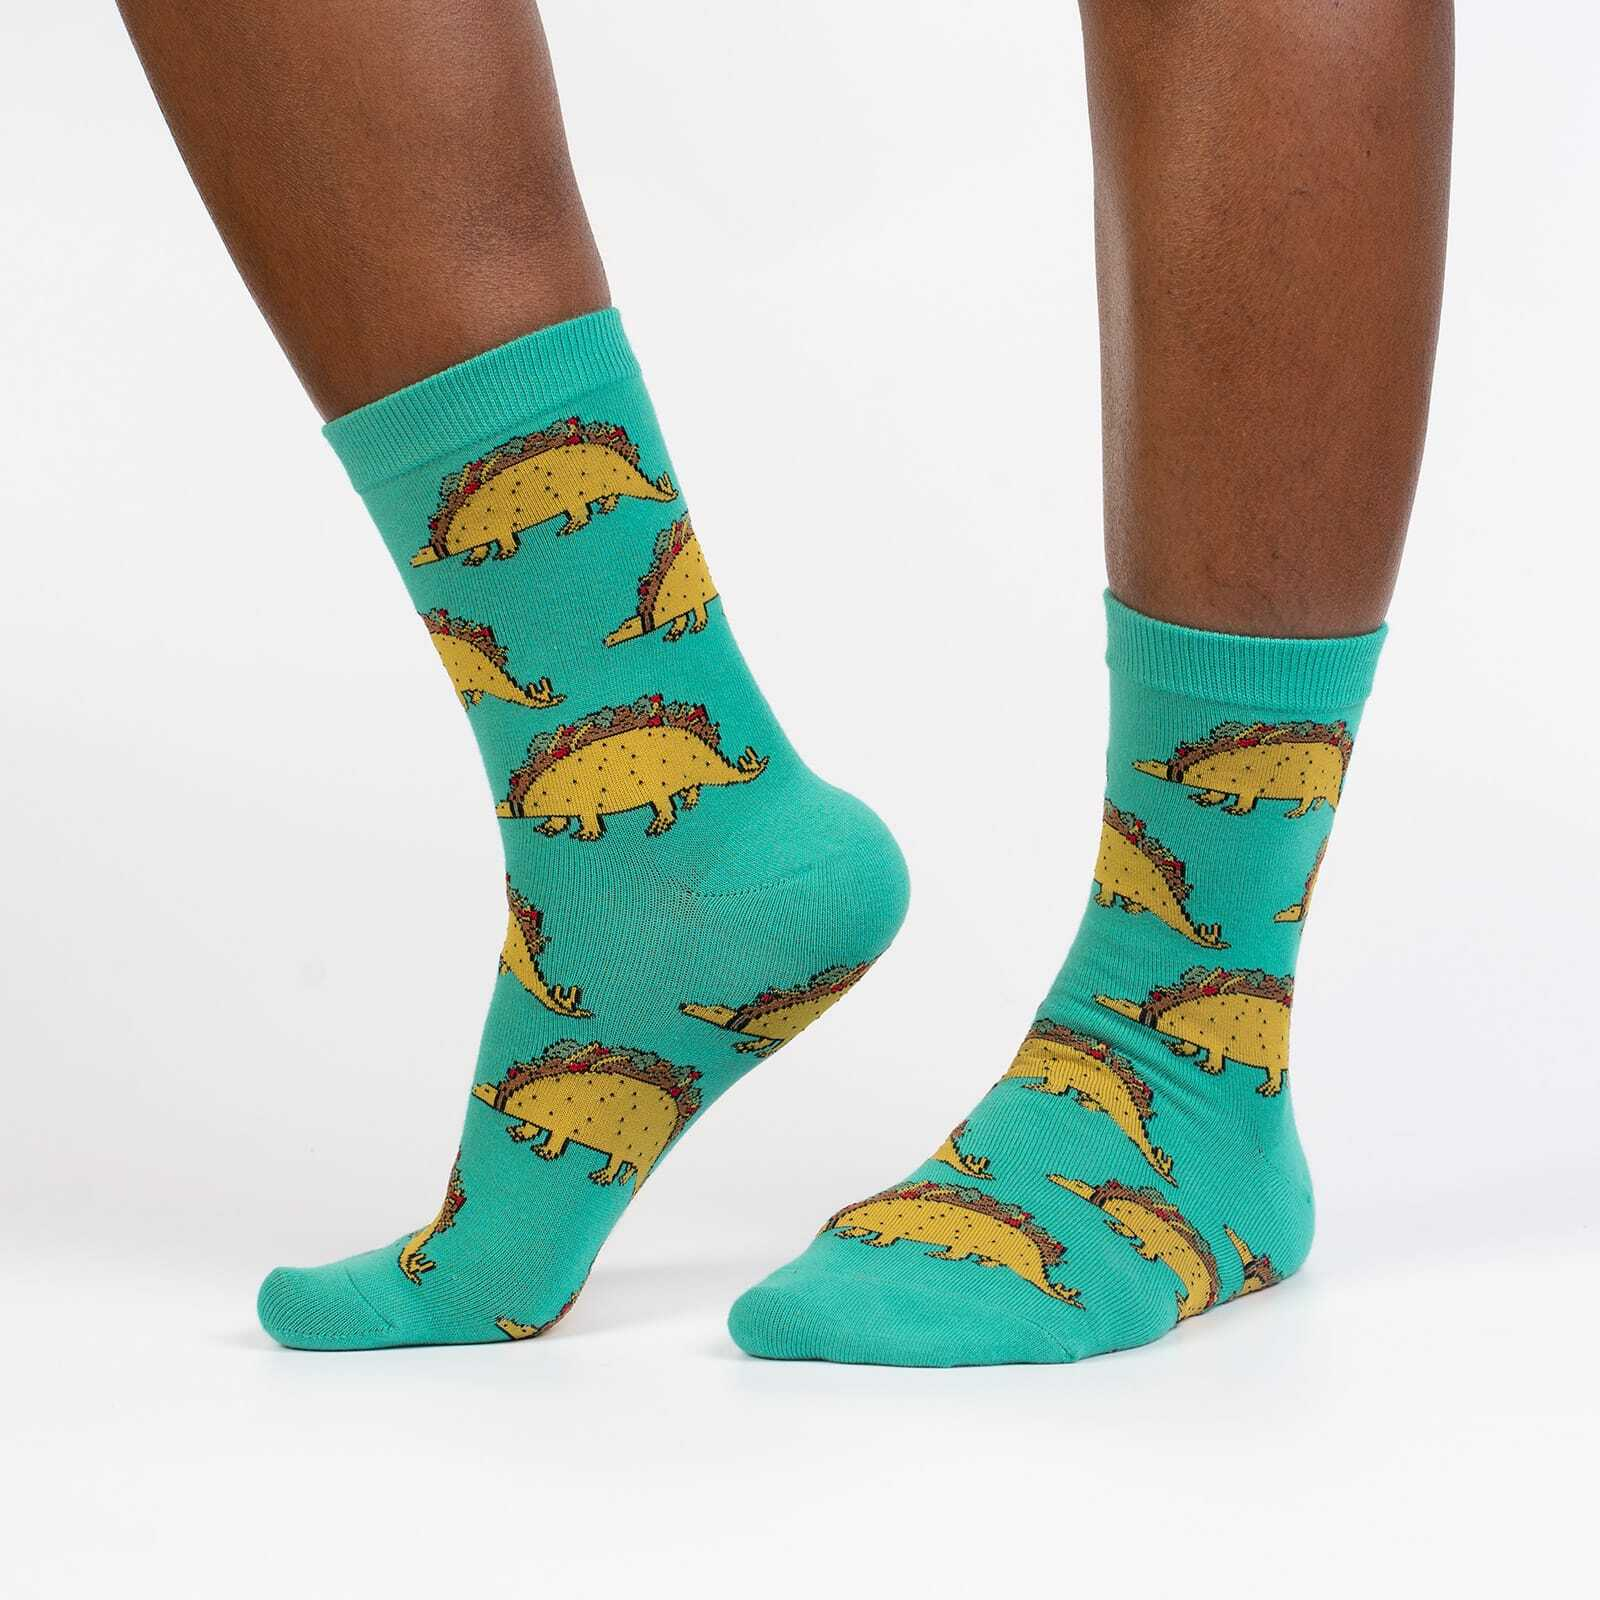 model wearing Tacosaurus Women's Crew Socks